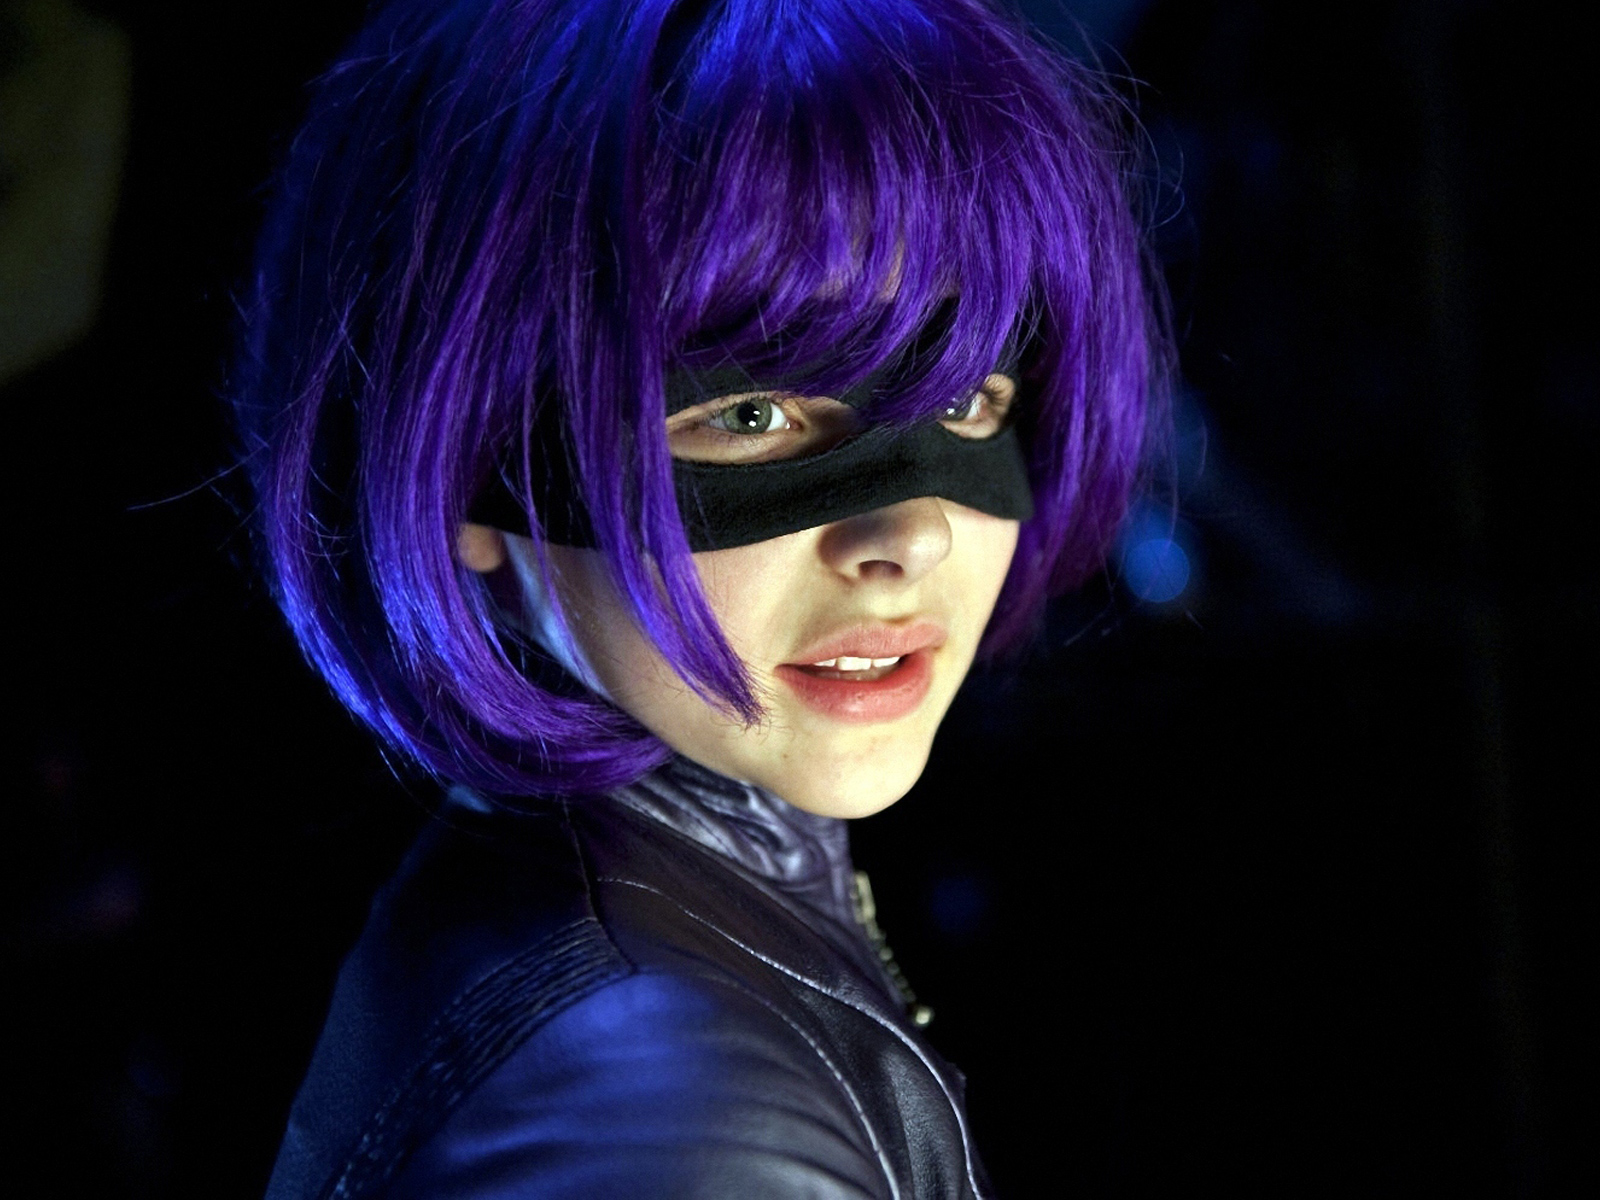 Kick Ass Hit Girl Chloe Moretz 1830.66 Kb